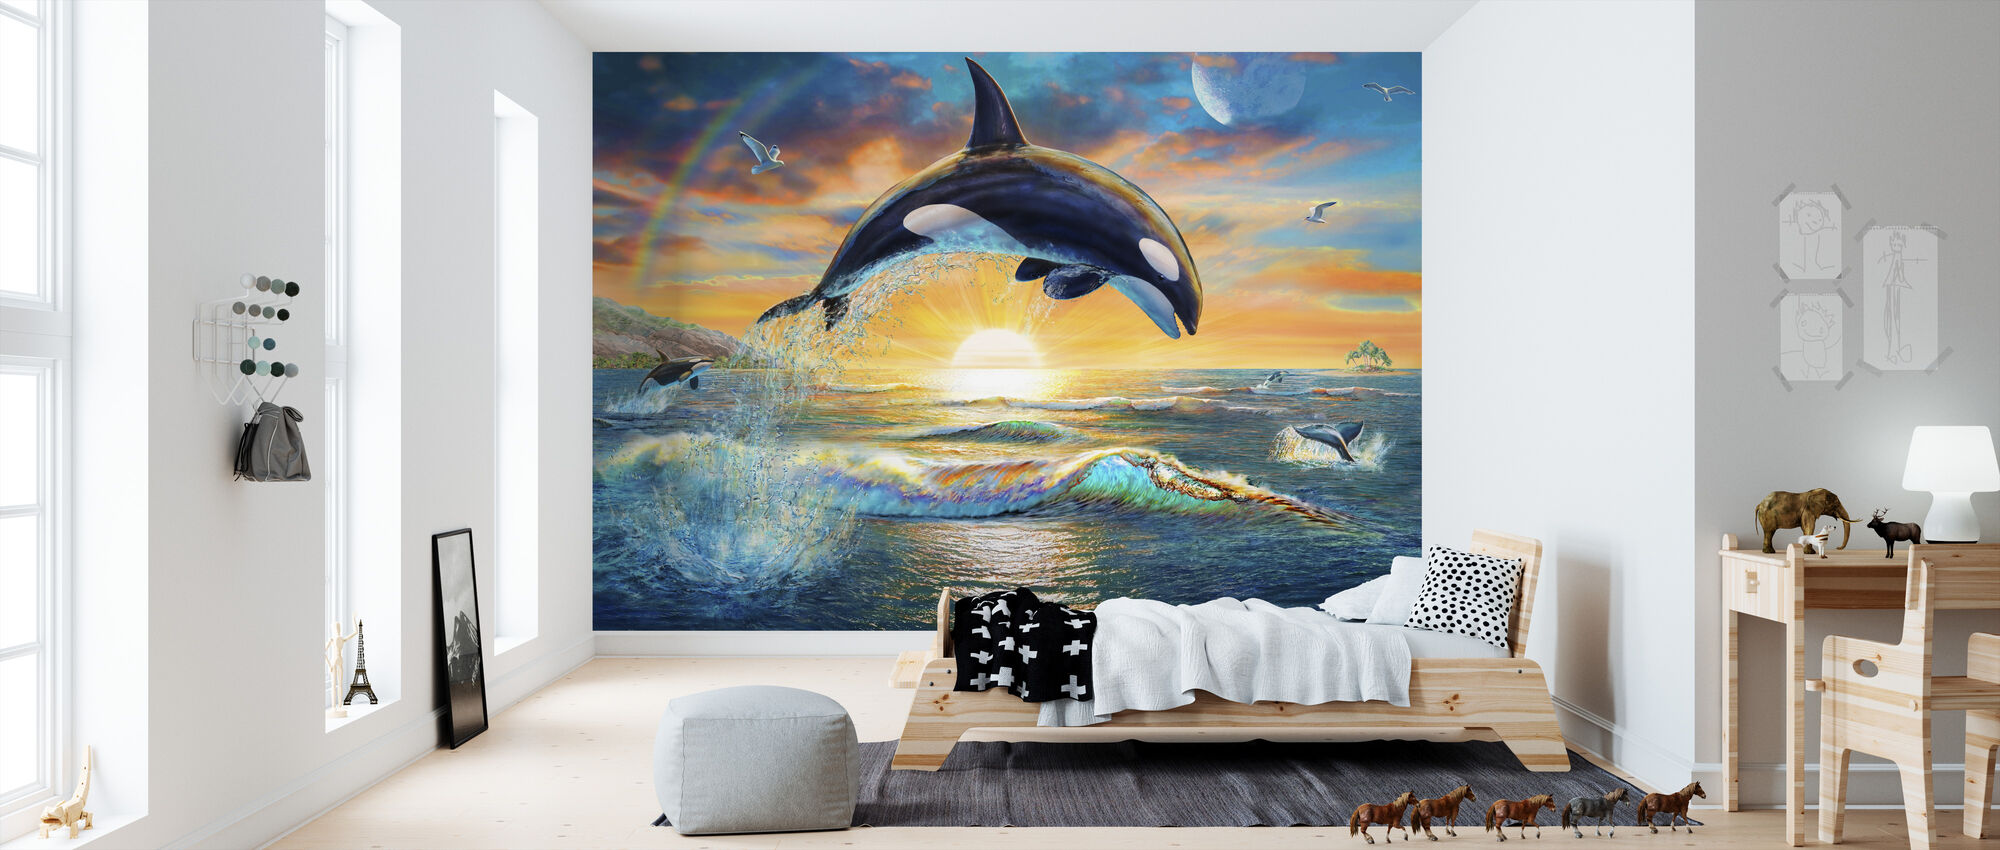 Orca Dawn - Wallpaper - Kids Room